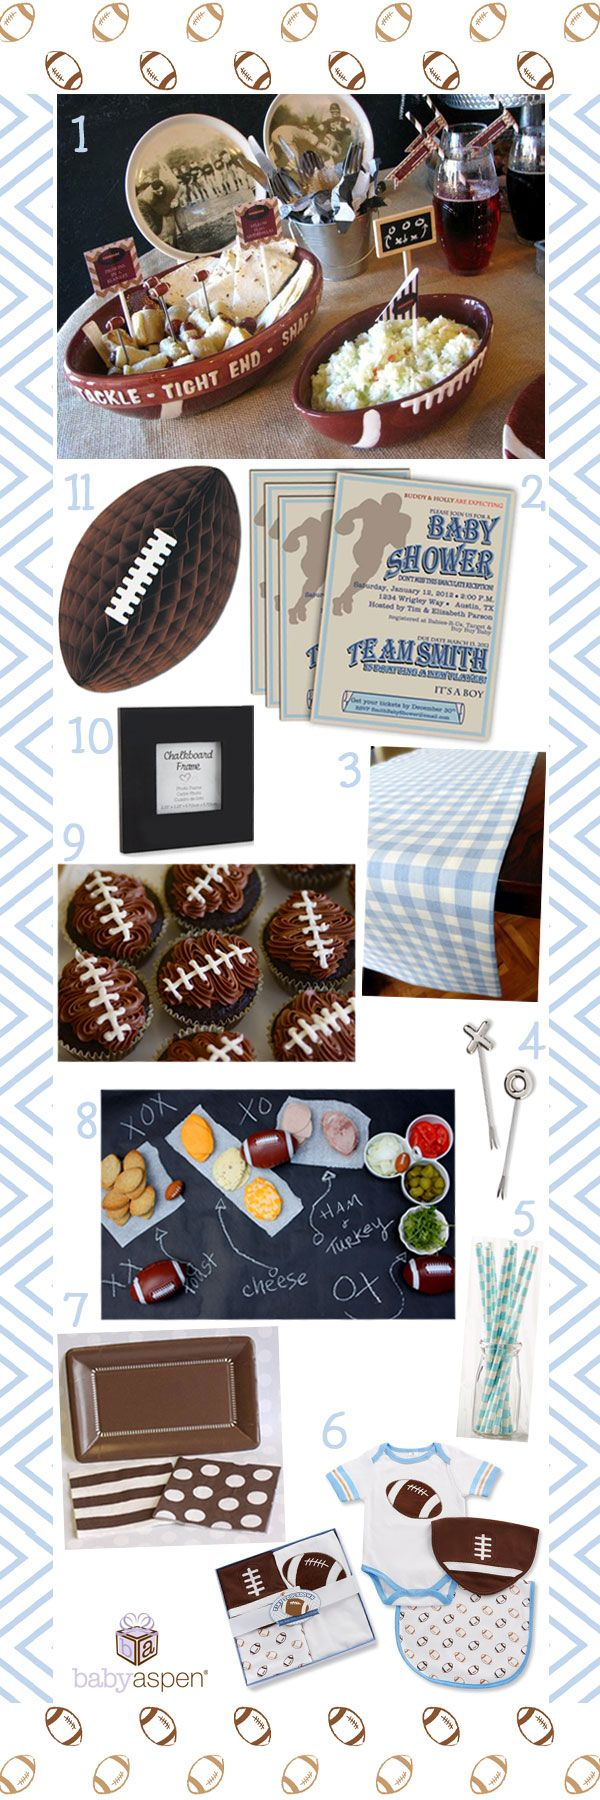 "Blue and Brown Vintage Football Baby Shower Theme with Football Layette by Baby Aspen | #babygiftsfrombabyaspen Pin to Win! How to enter: 1) Click through to fill out the form 2) Follow @babyaspen on Pinterest 3) Pin your favorite baby gifts with inspiration from our ""Adorable Gifts that Wow from Baby Aspen"" board http://www.pinterest.com/babyaspen/adorable-gifts-that-wow-from-baby-aspen/ babyaspen.com http://sweeps.piqora.com/babyaspen"